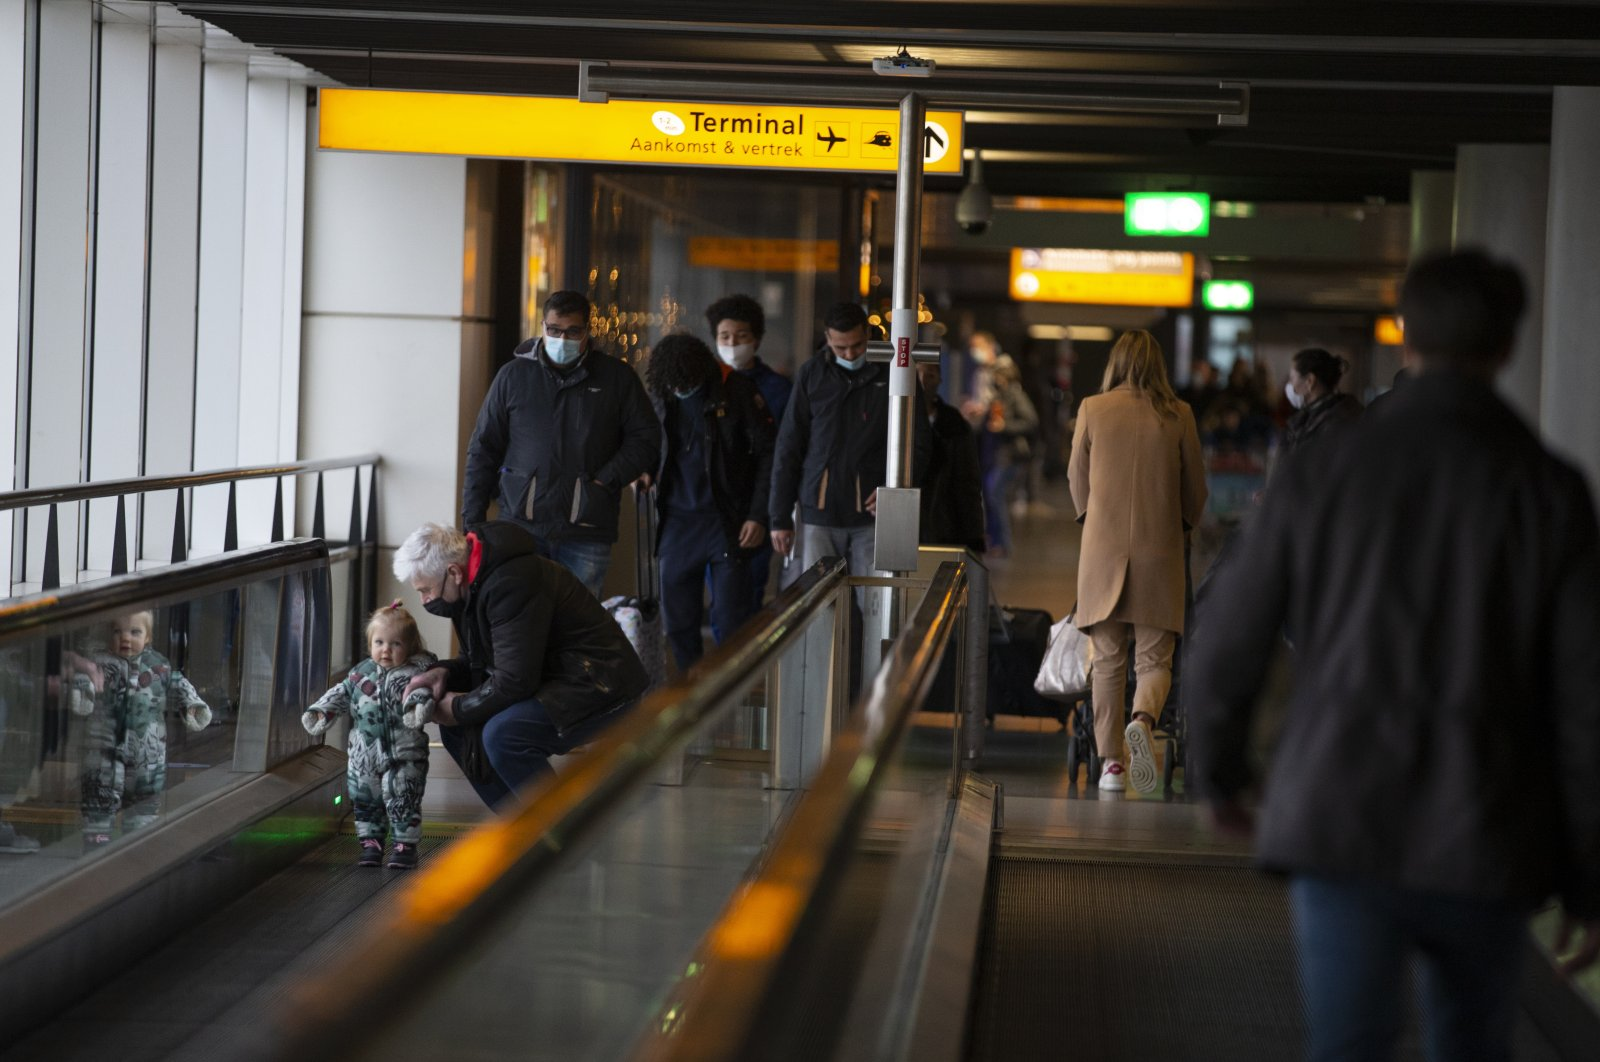 Arriving and departing passengers use moving walkways at Schiphol Airport, near Amsterdam, Netherlands, Dec. 18, 2020. (AP Photo)